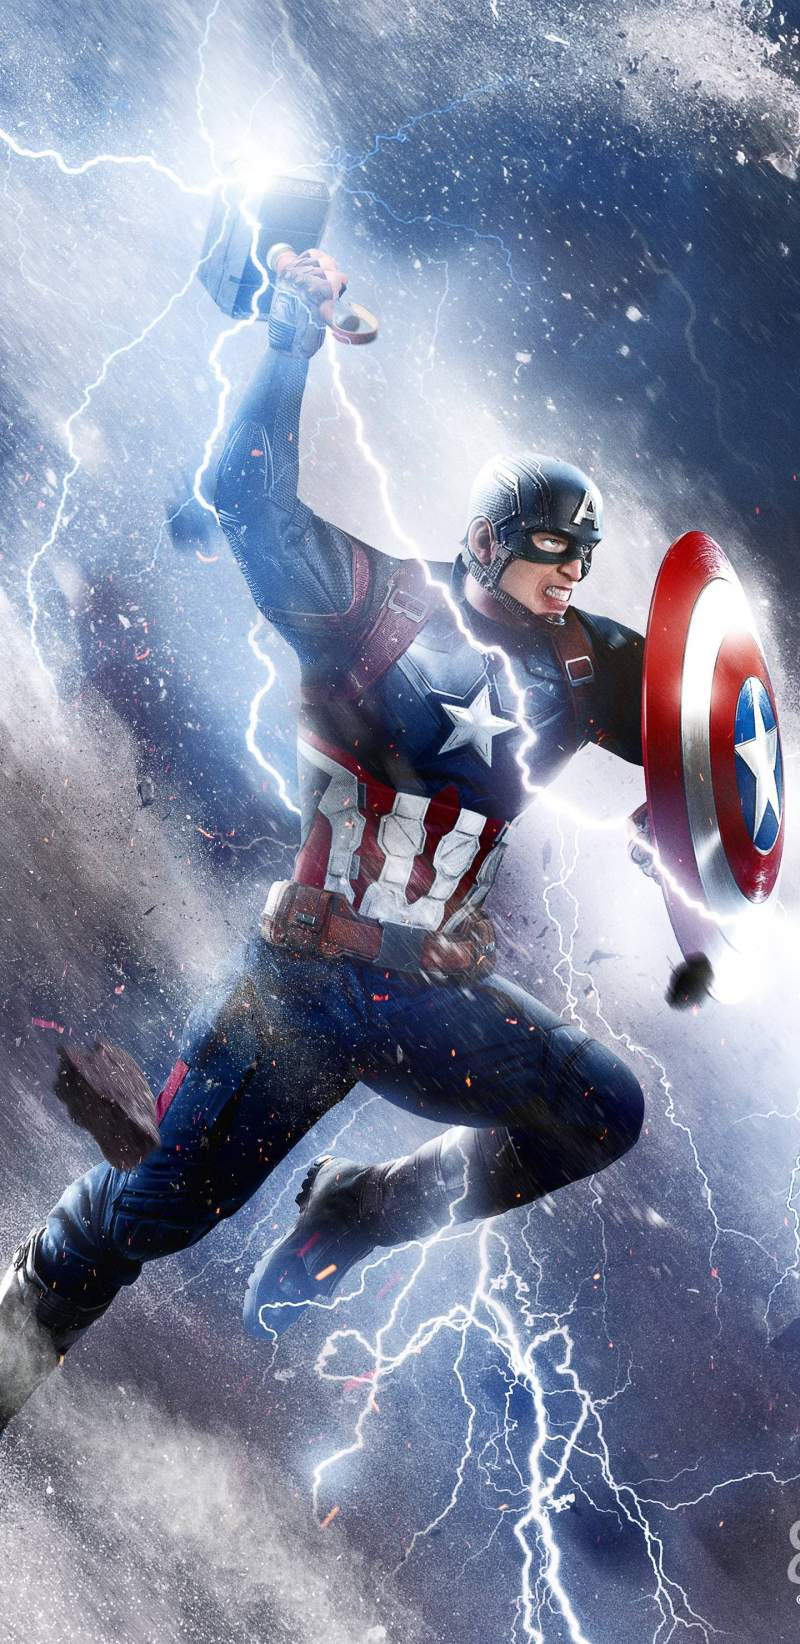 Captain America Thor Hammer Attack iPhone Wallpaper